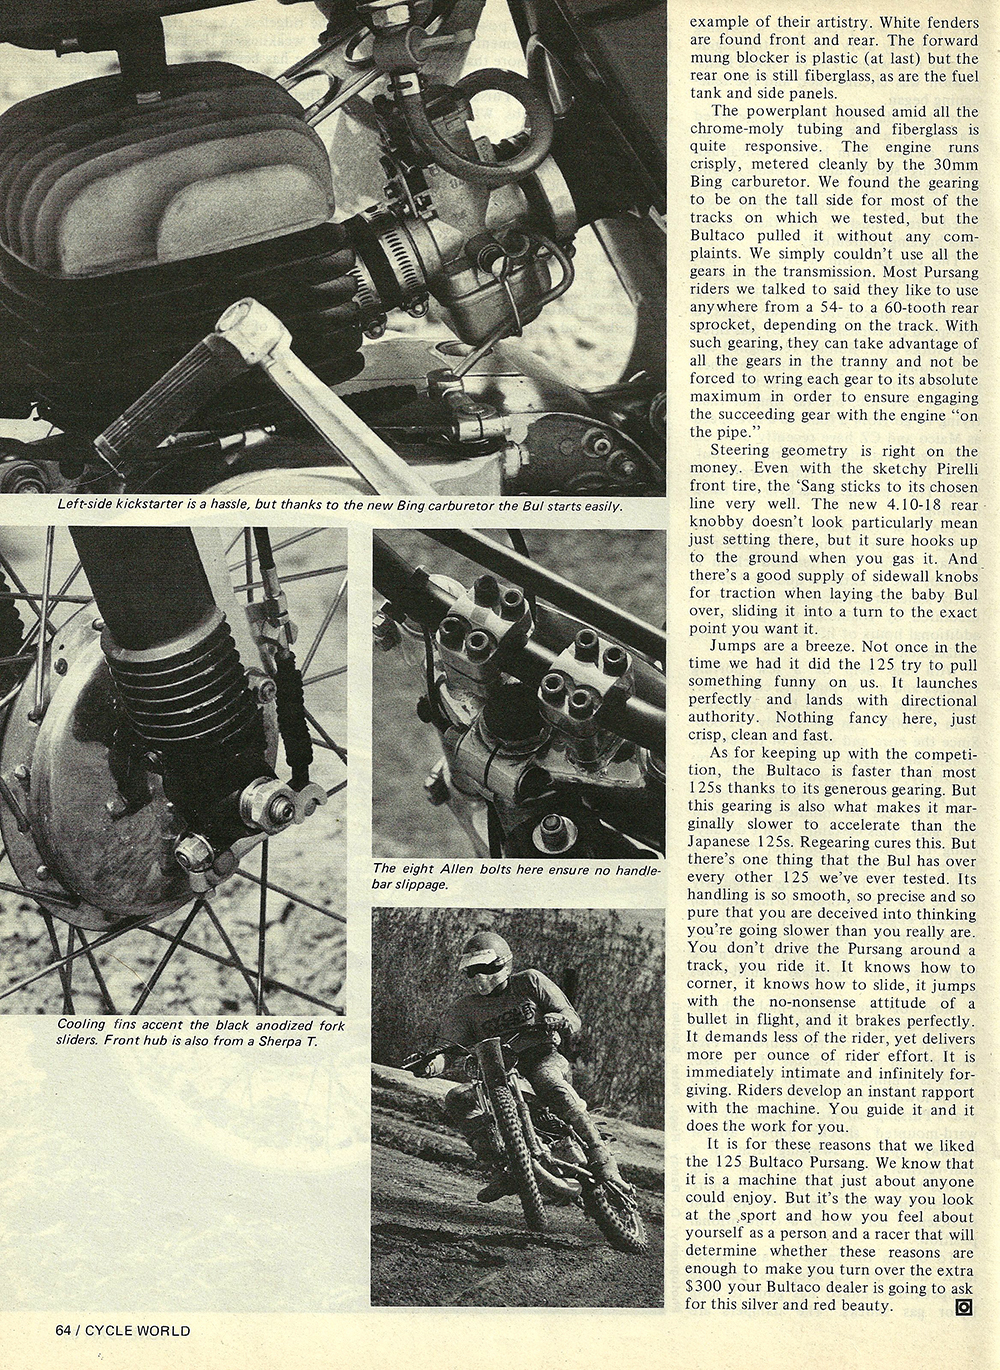 1976 Bultaco 125 Pursang road test 05.jpg